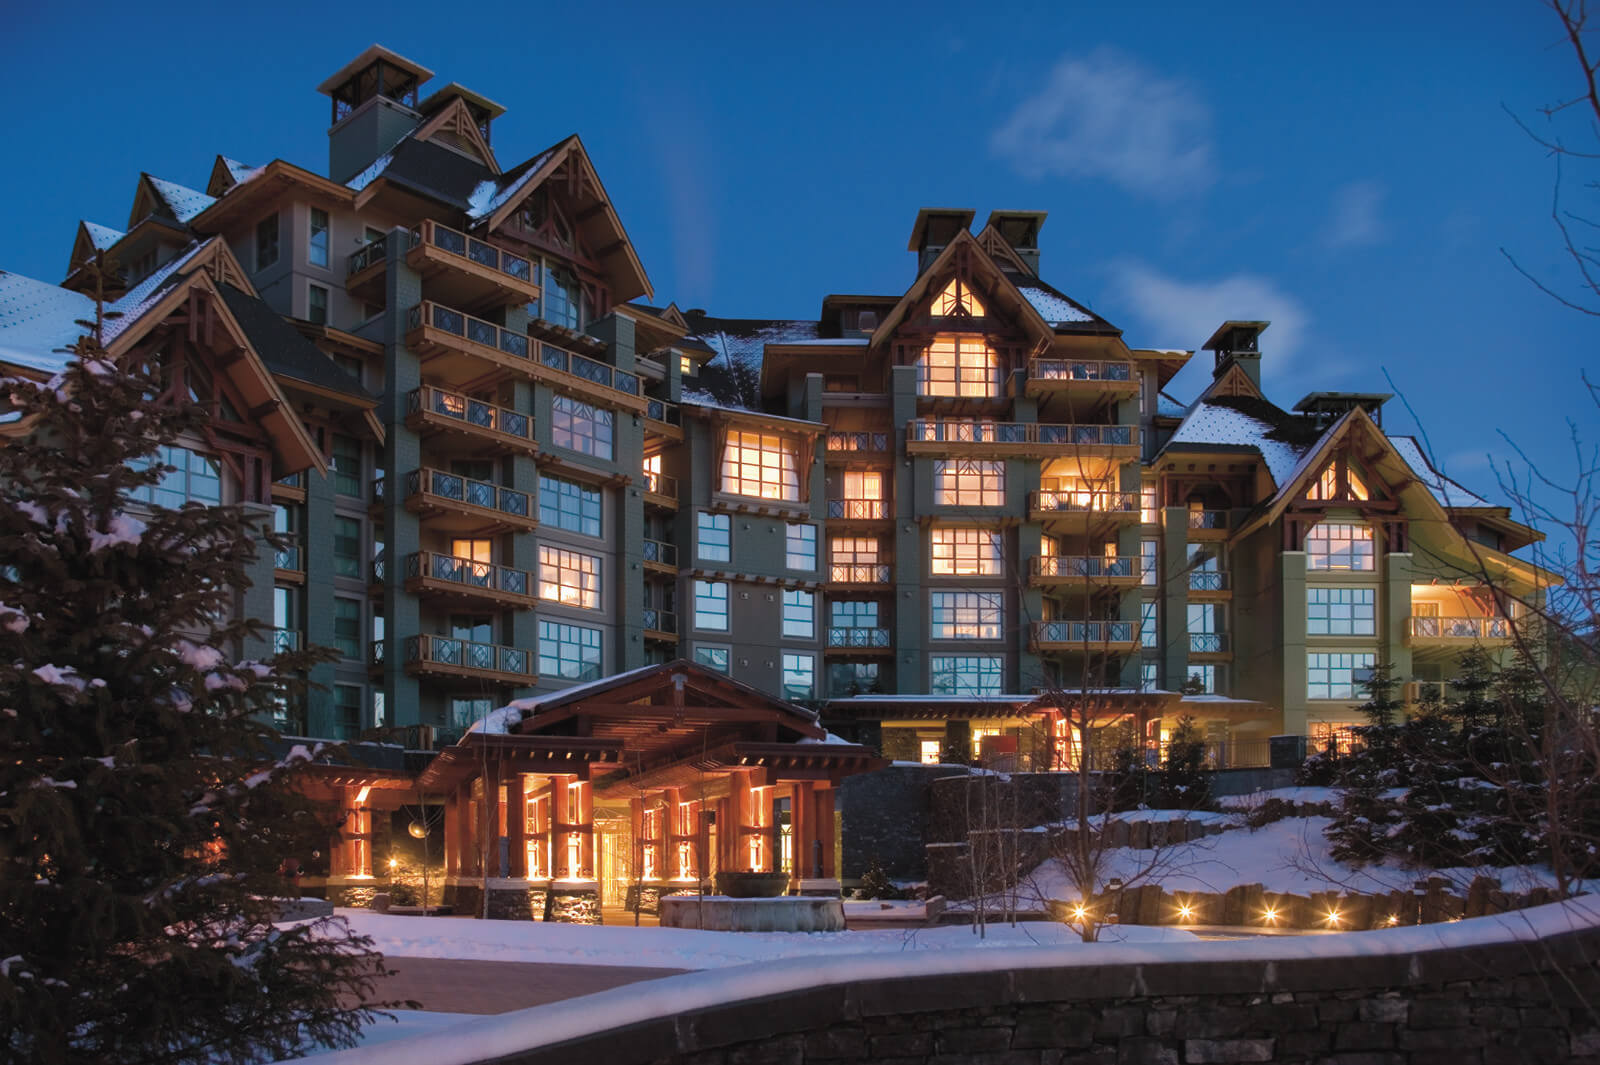 Hot Chocolate drinking is taken to new heights at the Four Seasons Whistler